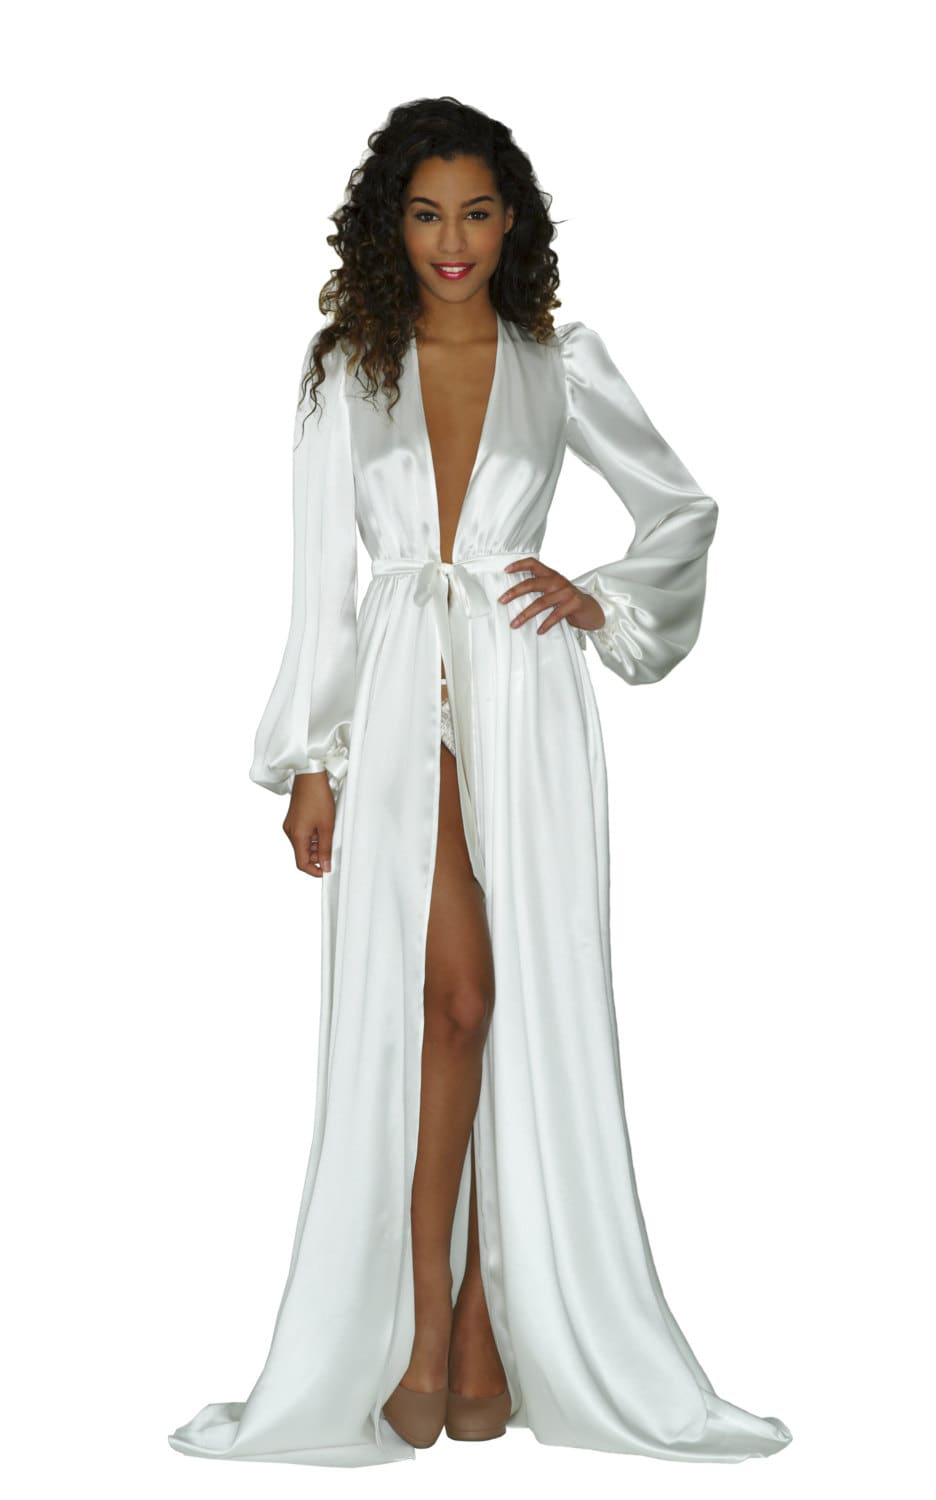 Luxury Silk Robes for Women. Both glamorous and fabulously comfortable, luxury bathrobes and women's silk robes from Julianna Rae are the perfect choice for the woman who deserves to .